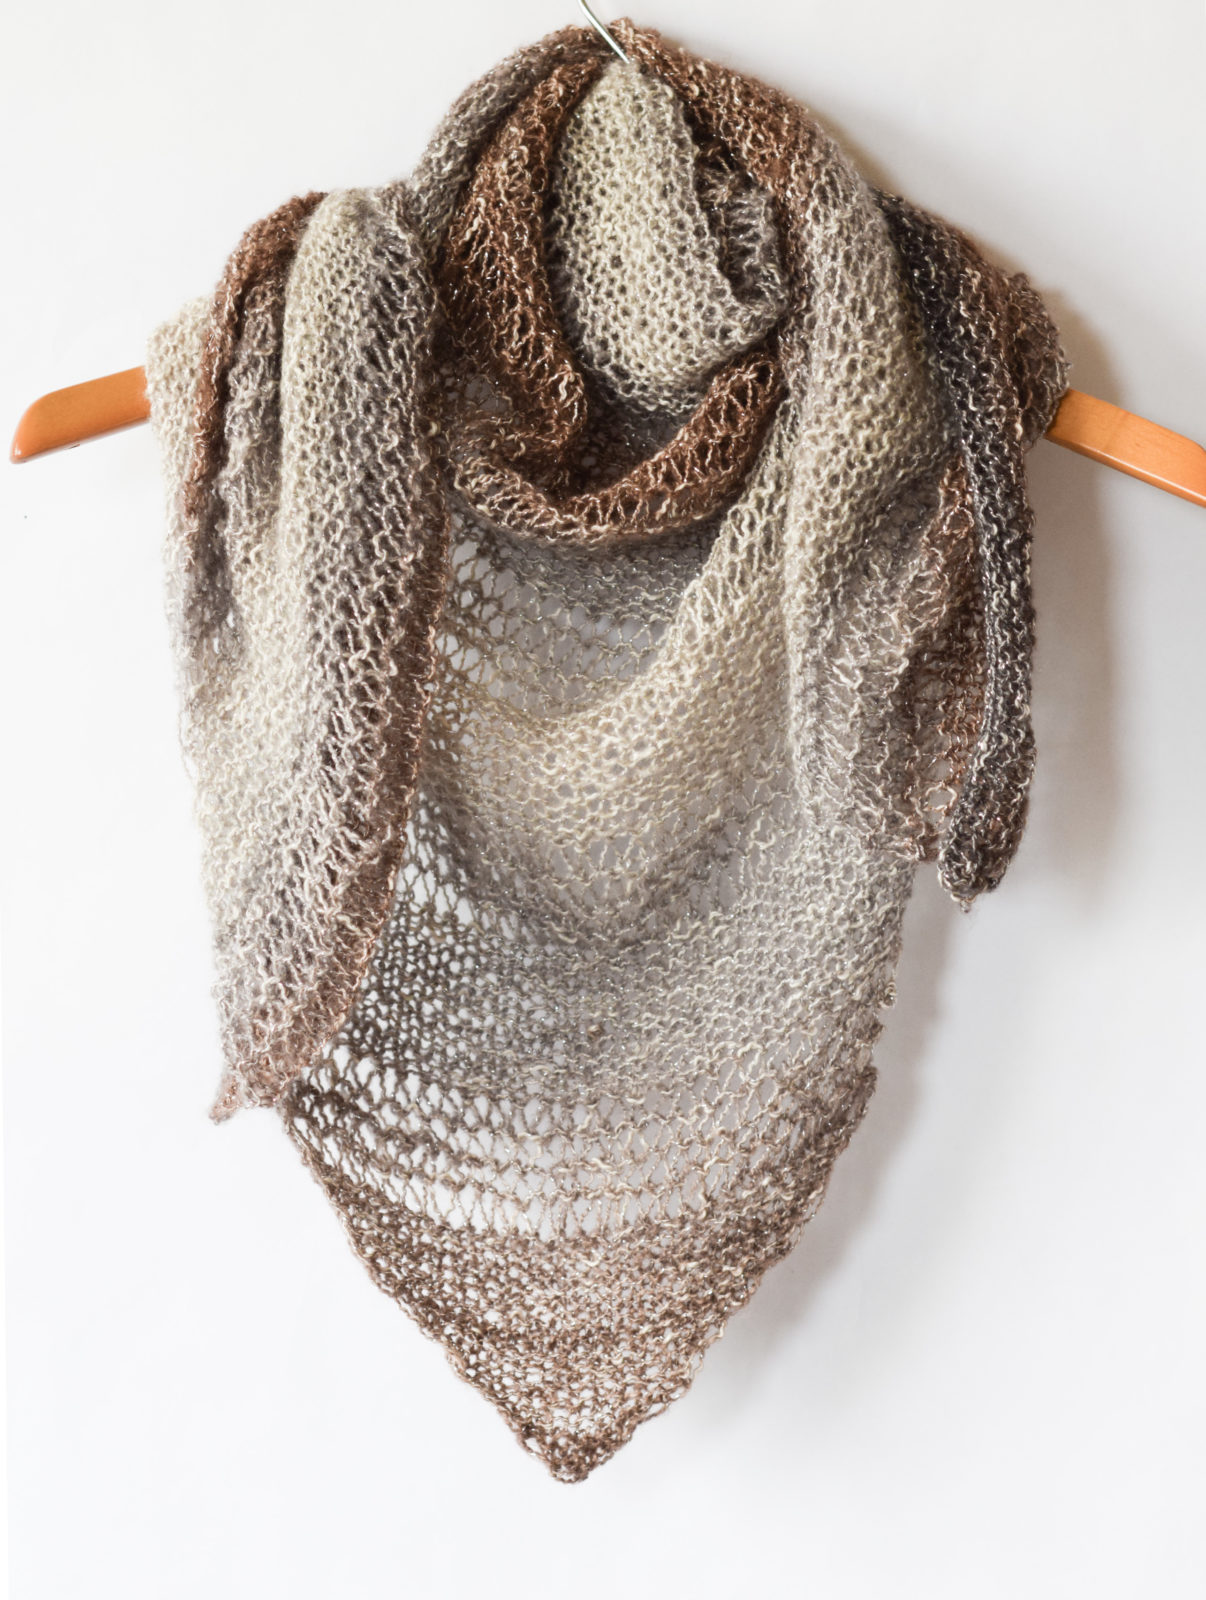 Knitting Patterns For Triangle Scarves : How To Knit An Easy Triangle Wrap   Mama In A Stitch